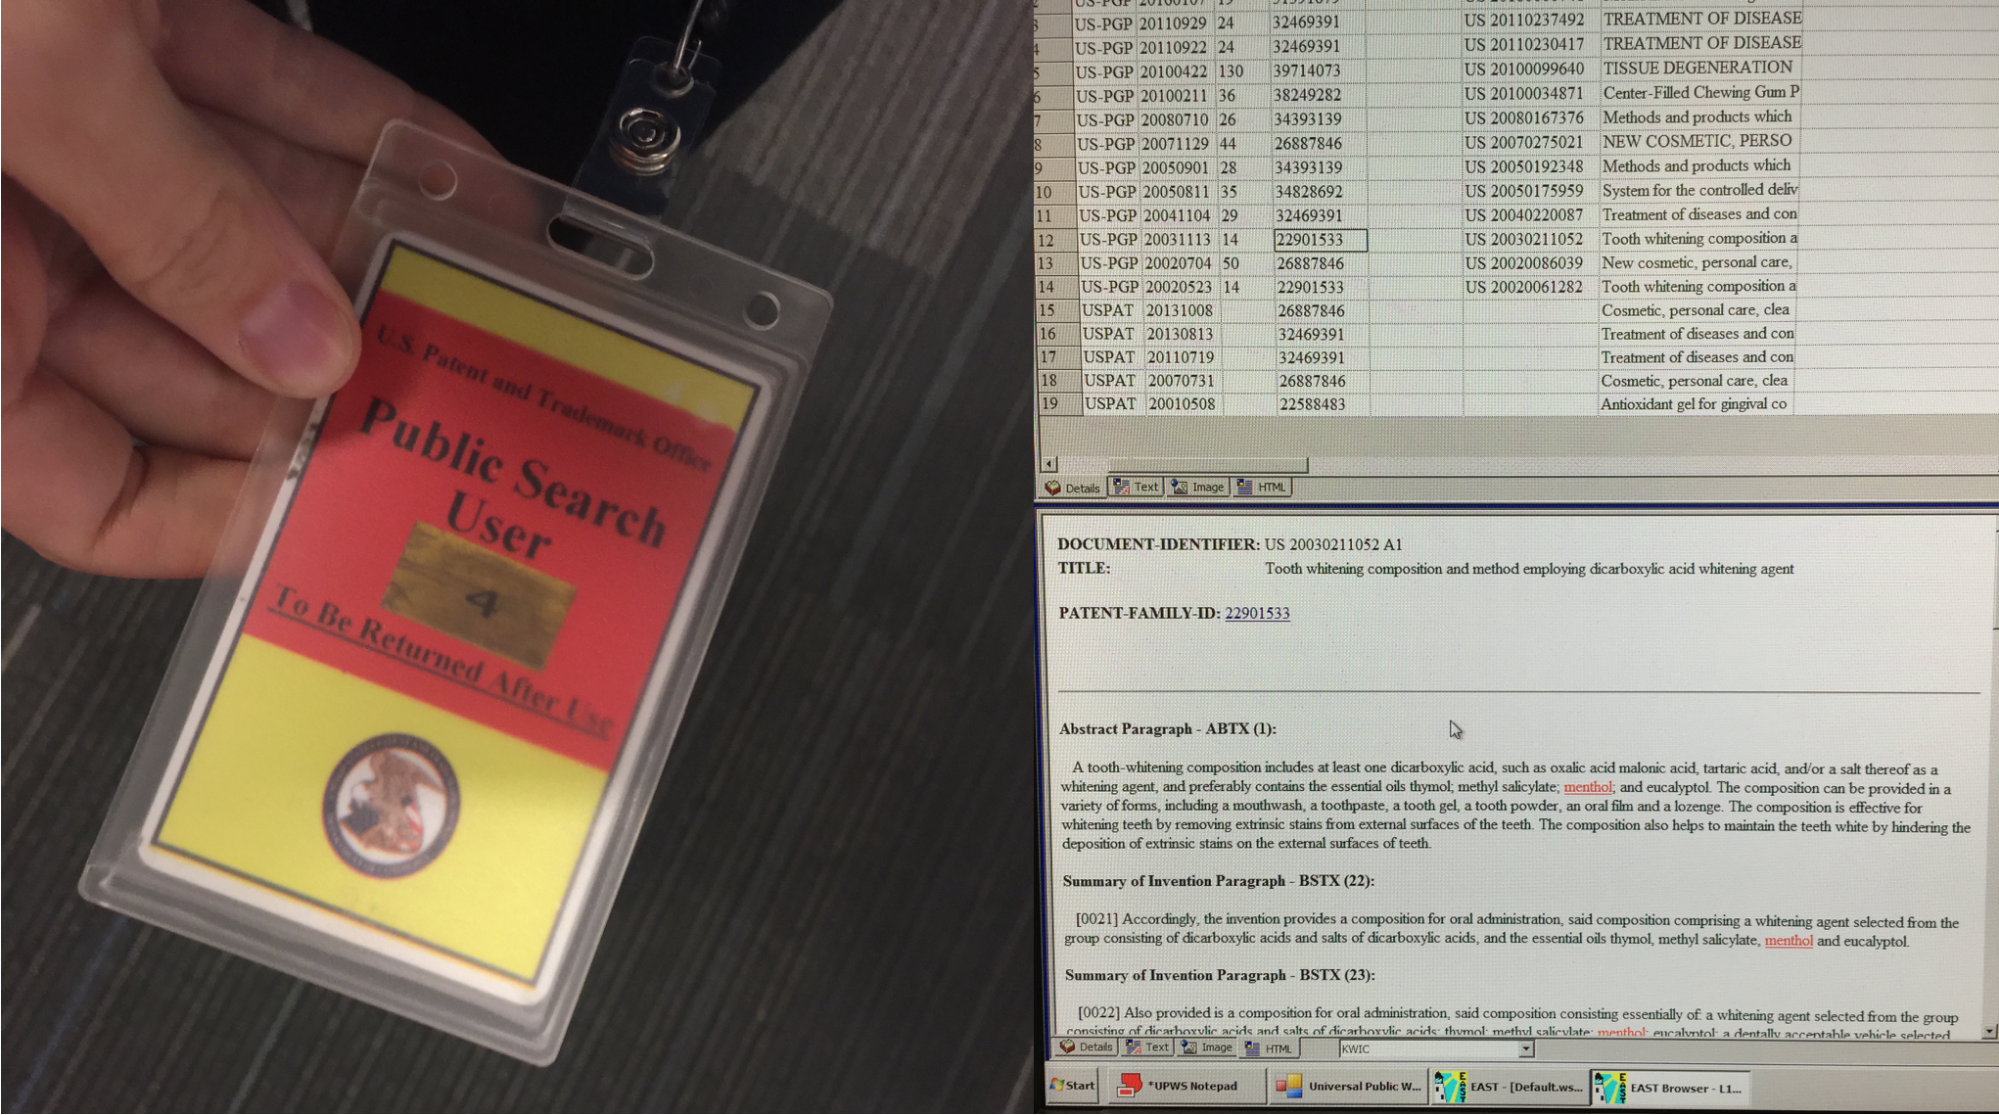 Picture showing a name tag and spreadsheets/emails on the right